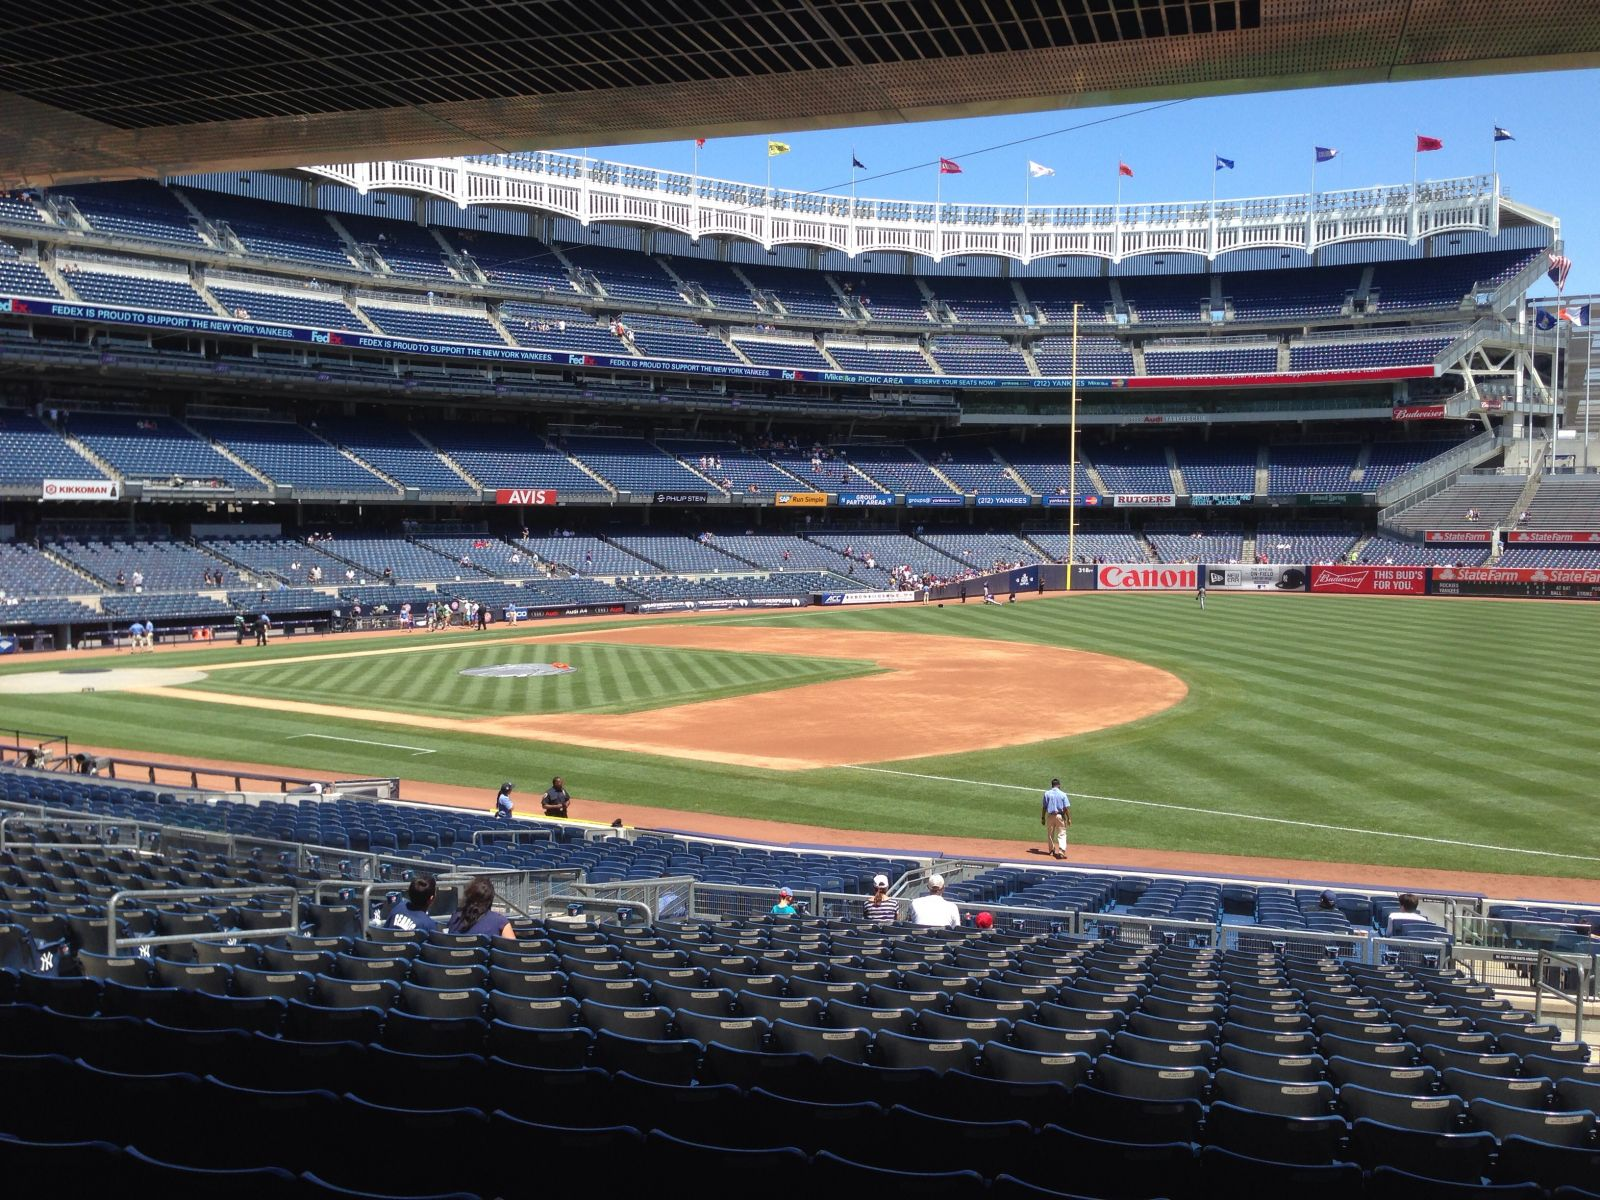 Section 113 seat view